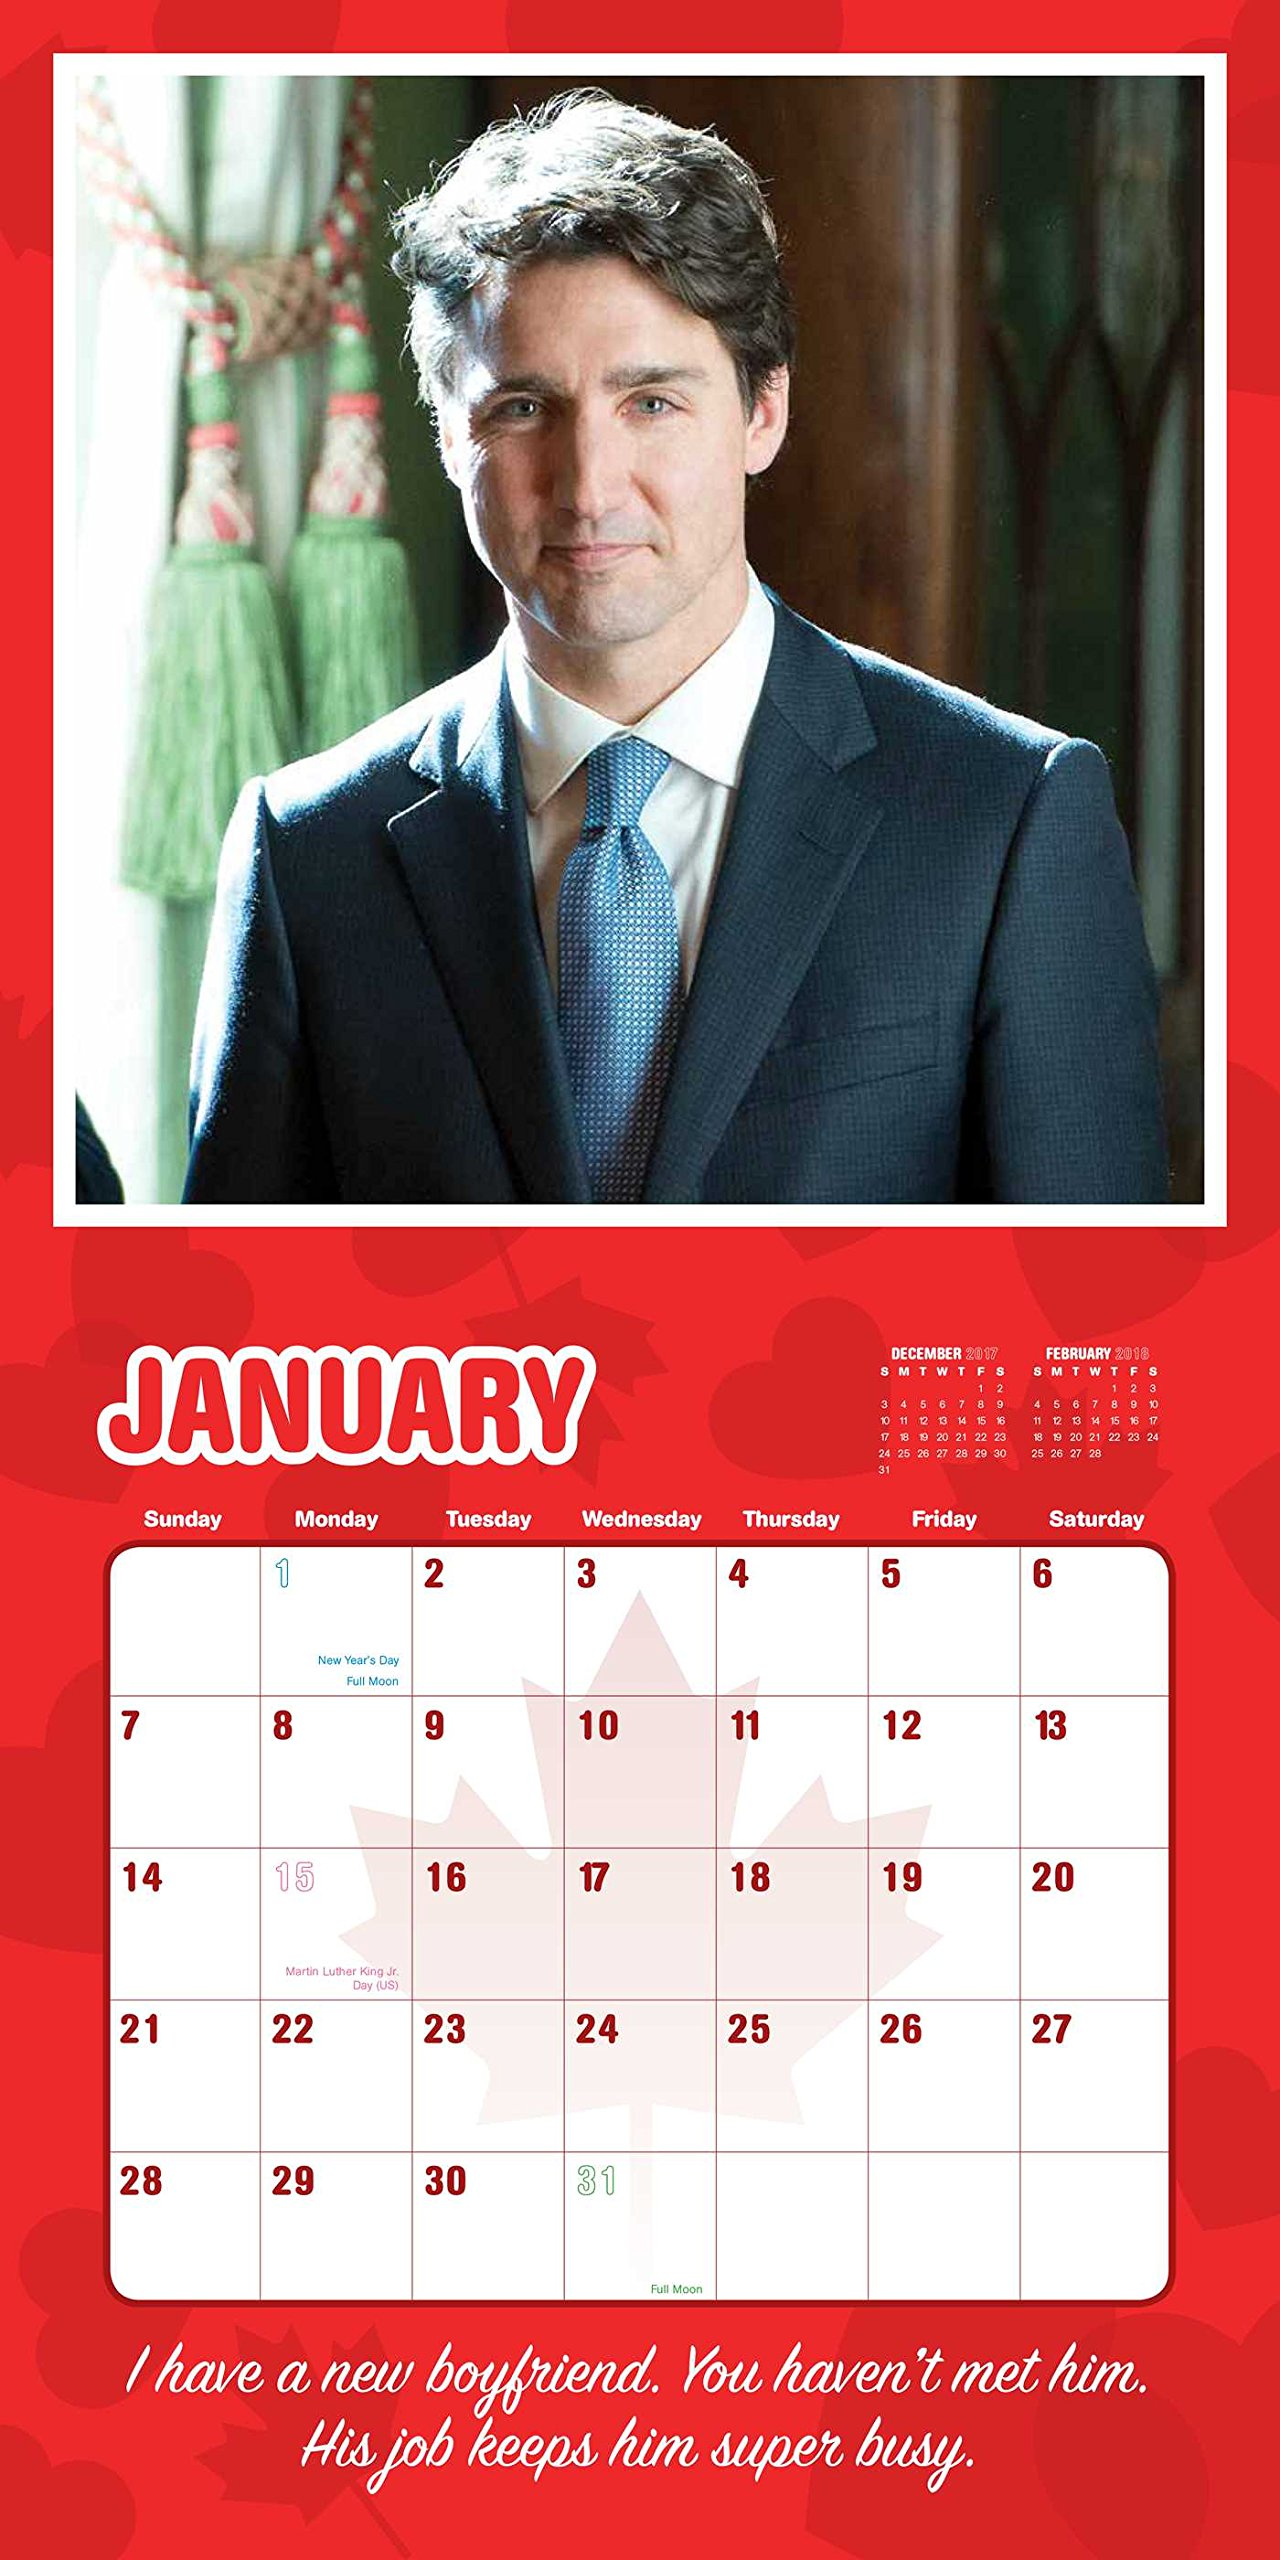 The January Page Of Calendar Bears This Average Portrait Trudeau Plus A Troubling Quote I Have New Boyfriend You Havent Met Him